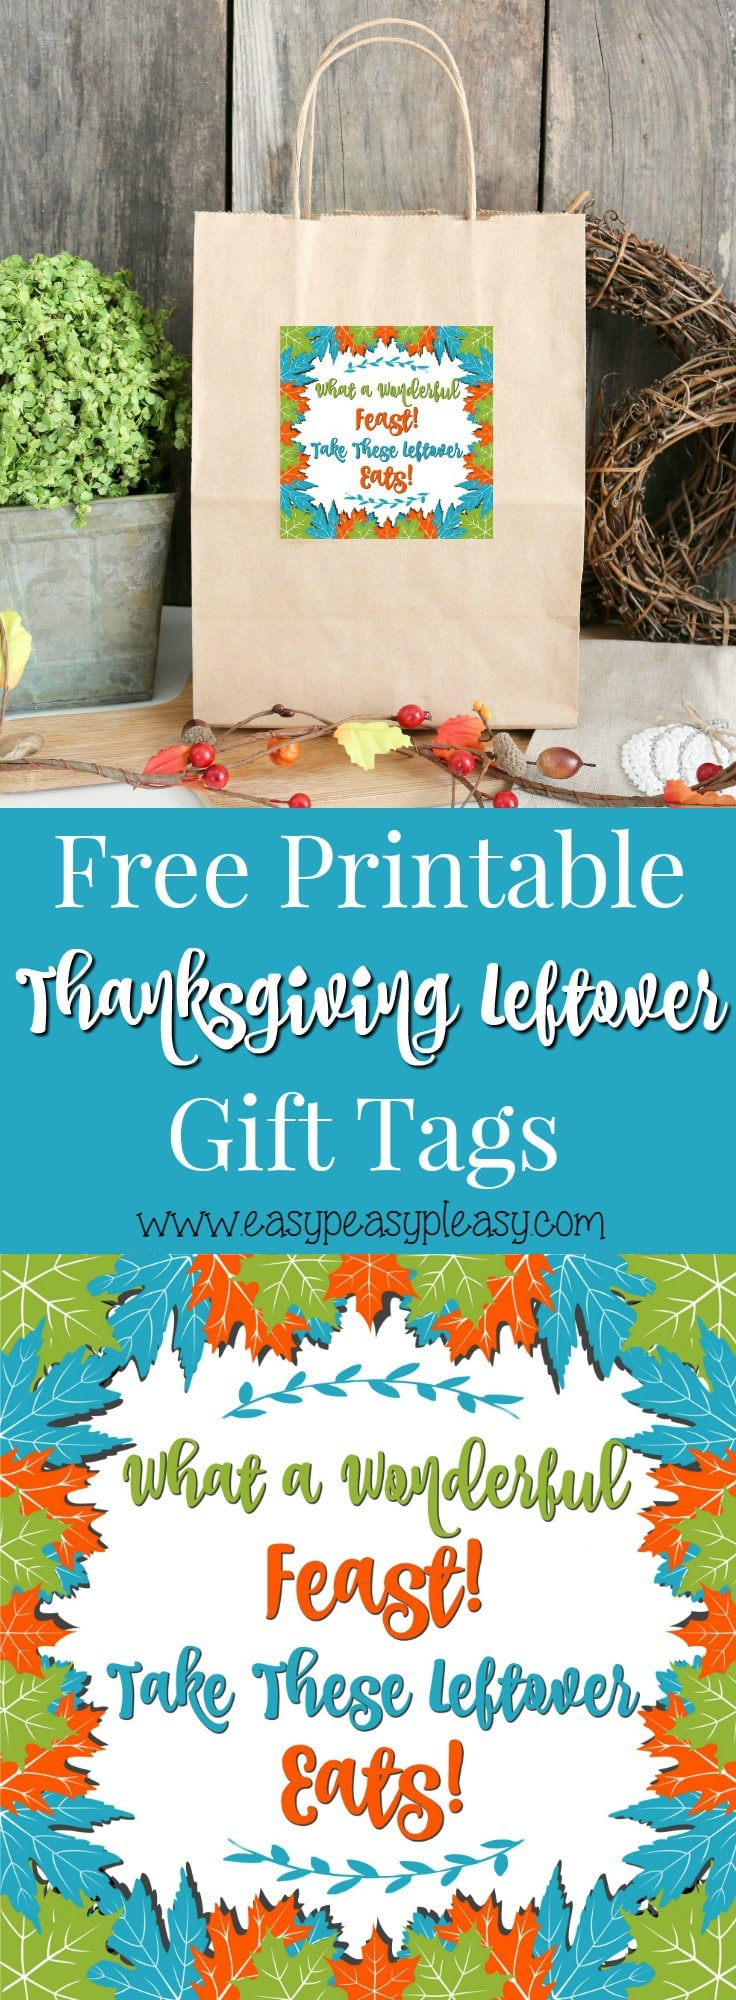 Free Printable Thanksgiving Leftovers Gift Tags are perfect for sending the family home with leftovers.